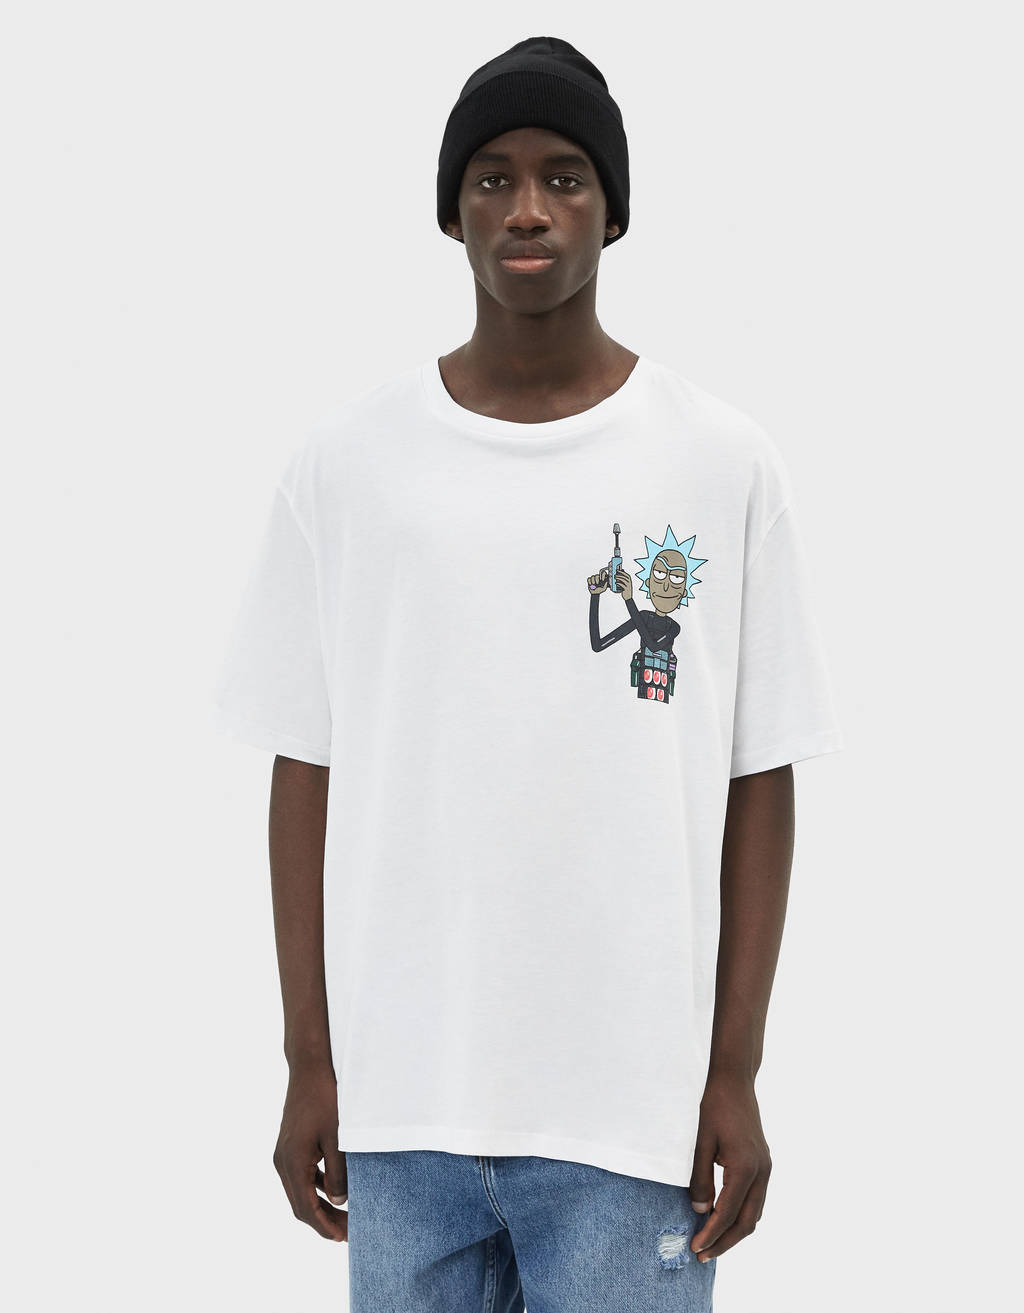 Camiseta 'Rick & Morty'